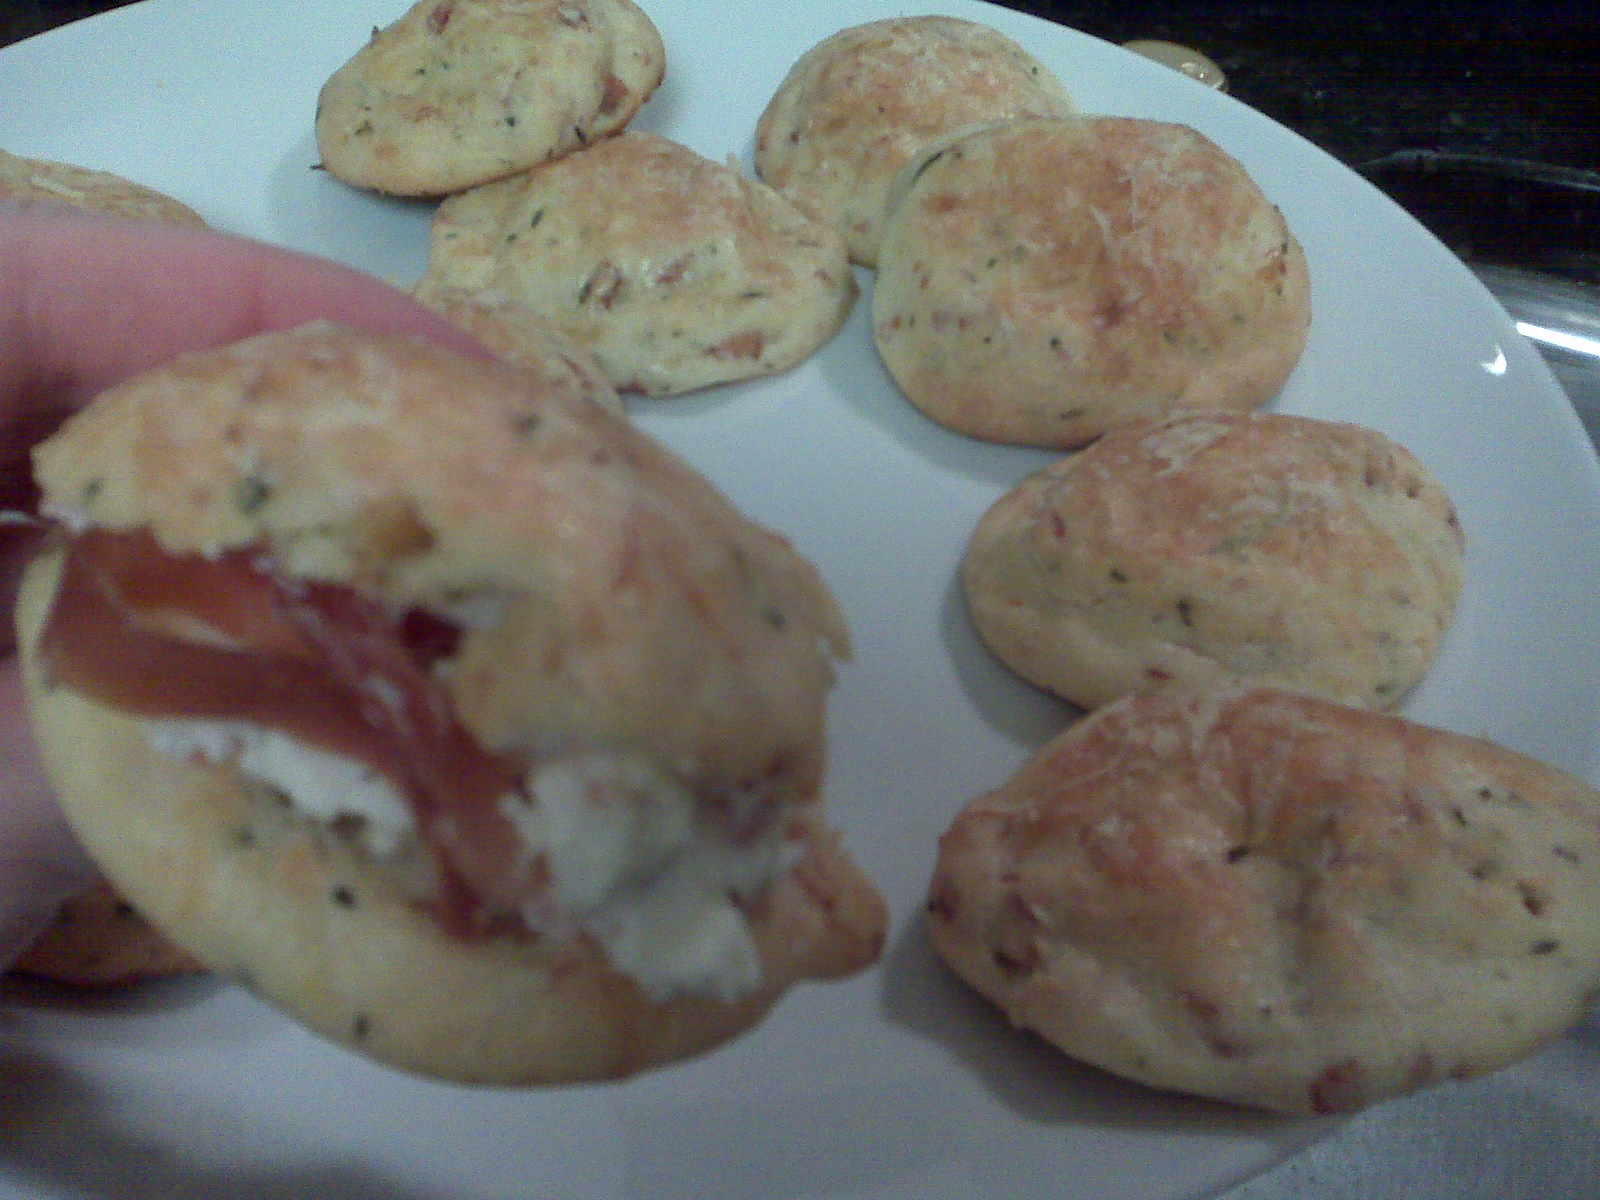 Parmesan and Prosciutto Profiteroles with Goat Cheese